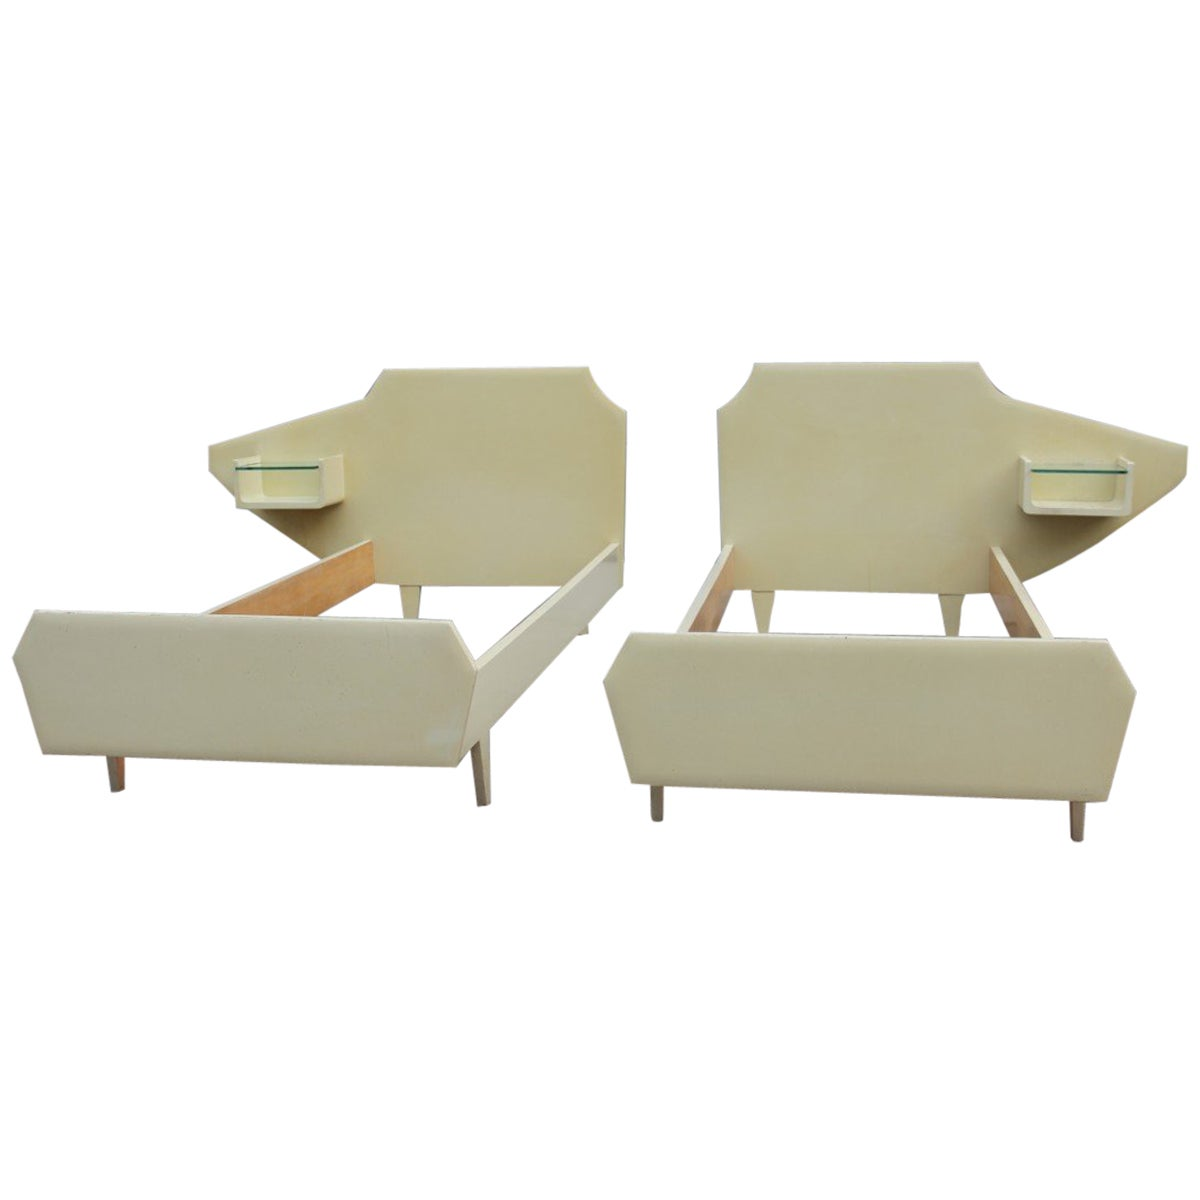 Pair of Italian Single Beds Design Dassi Wood Lacquered Mid century Modern